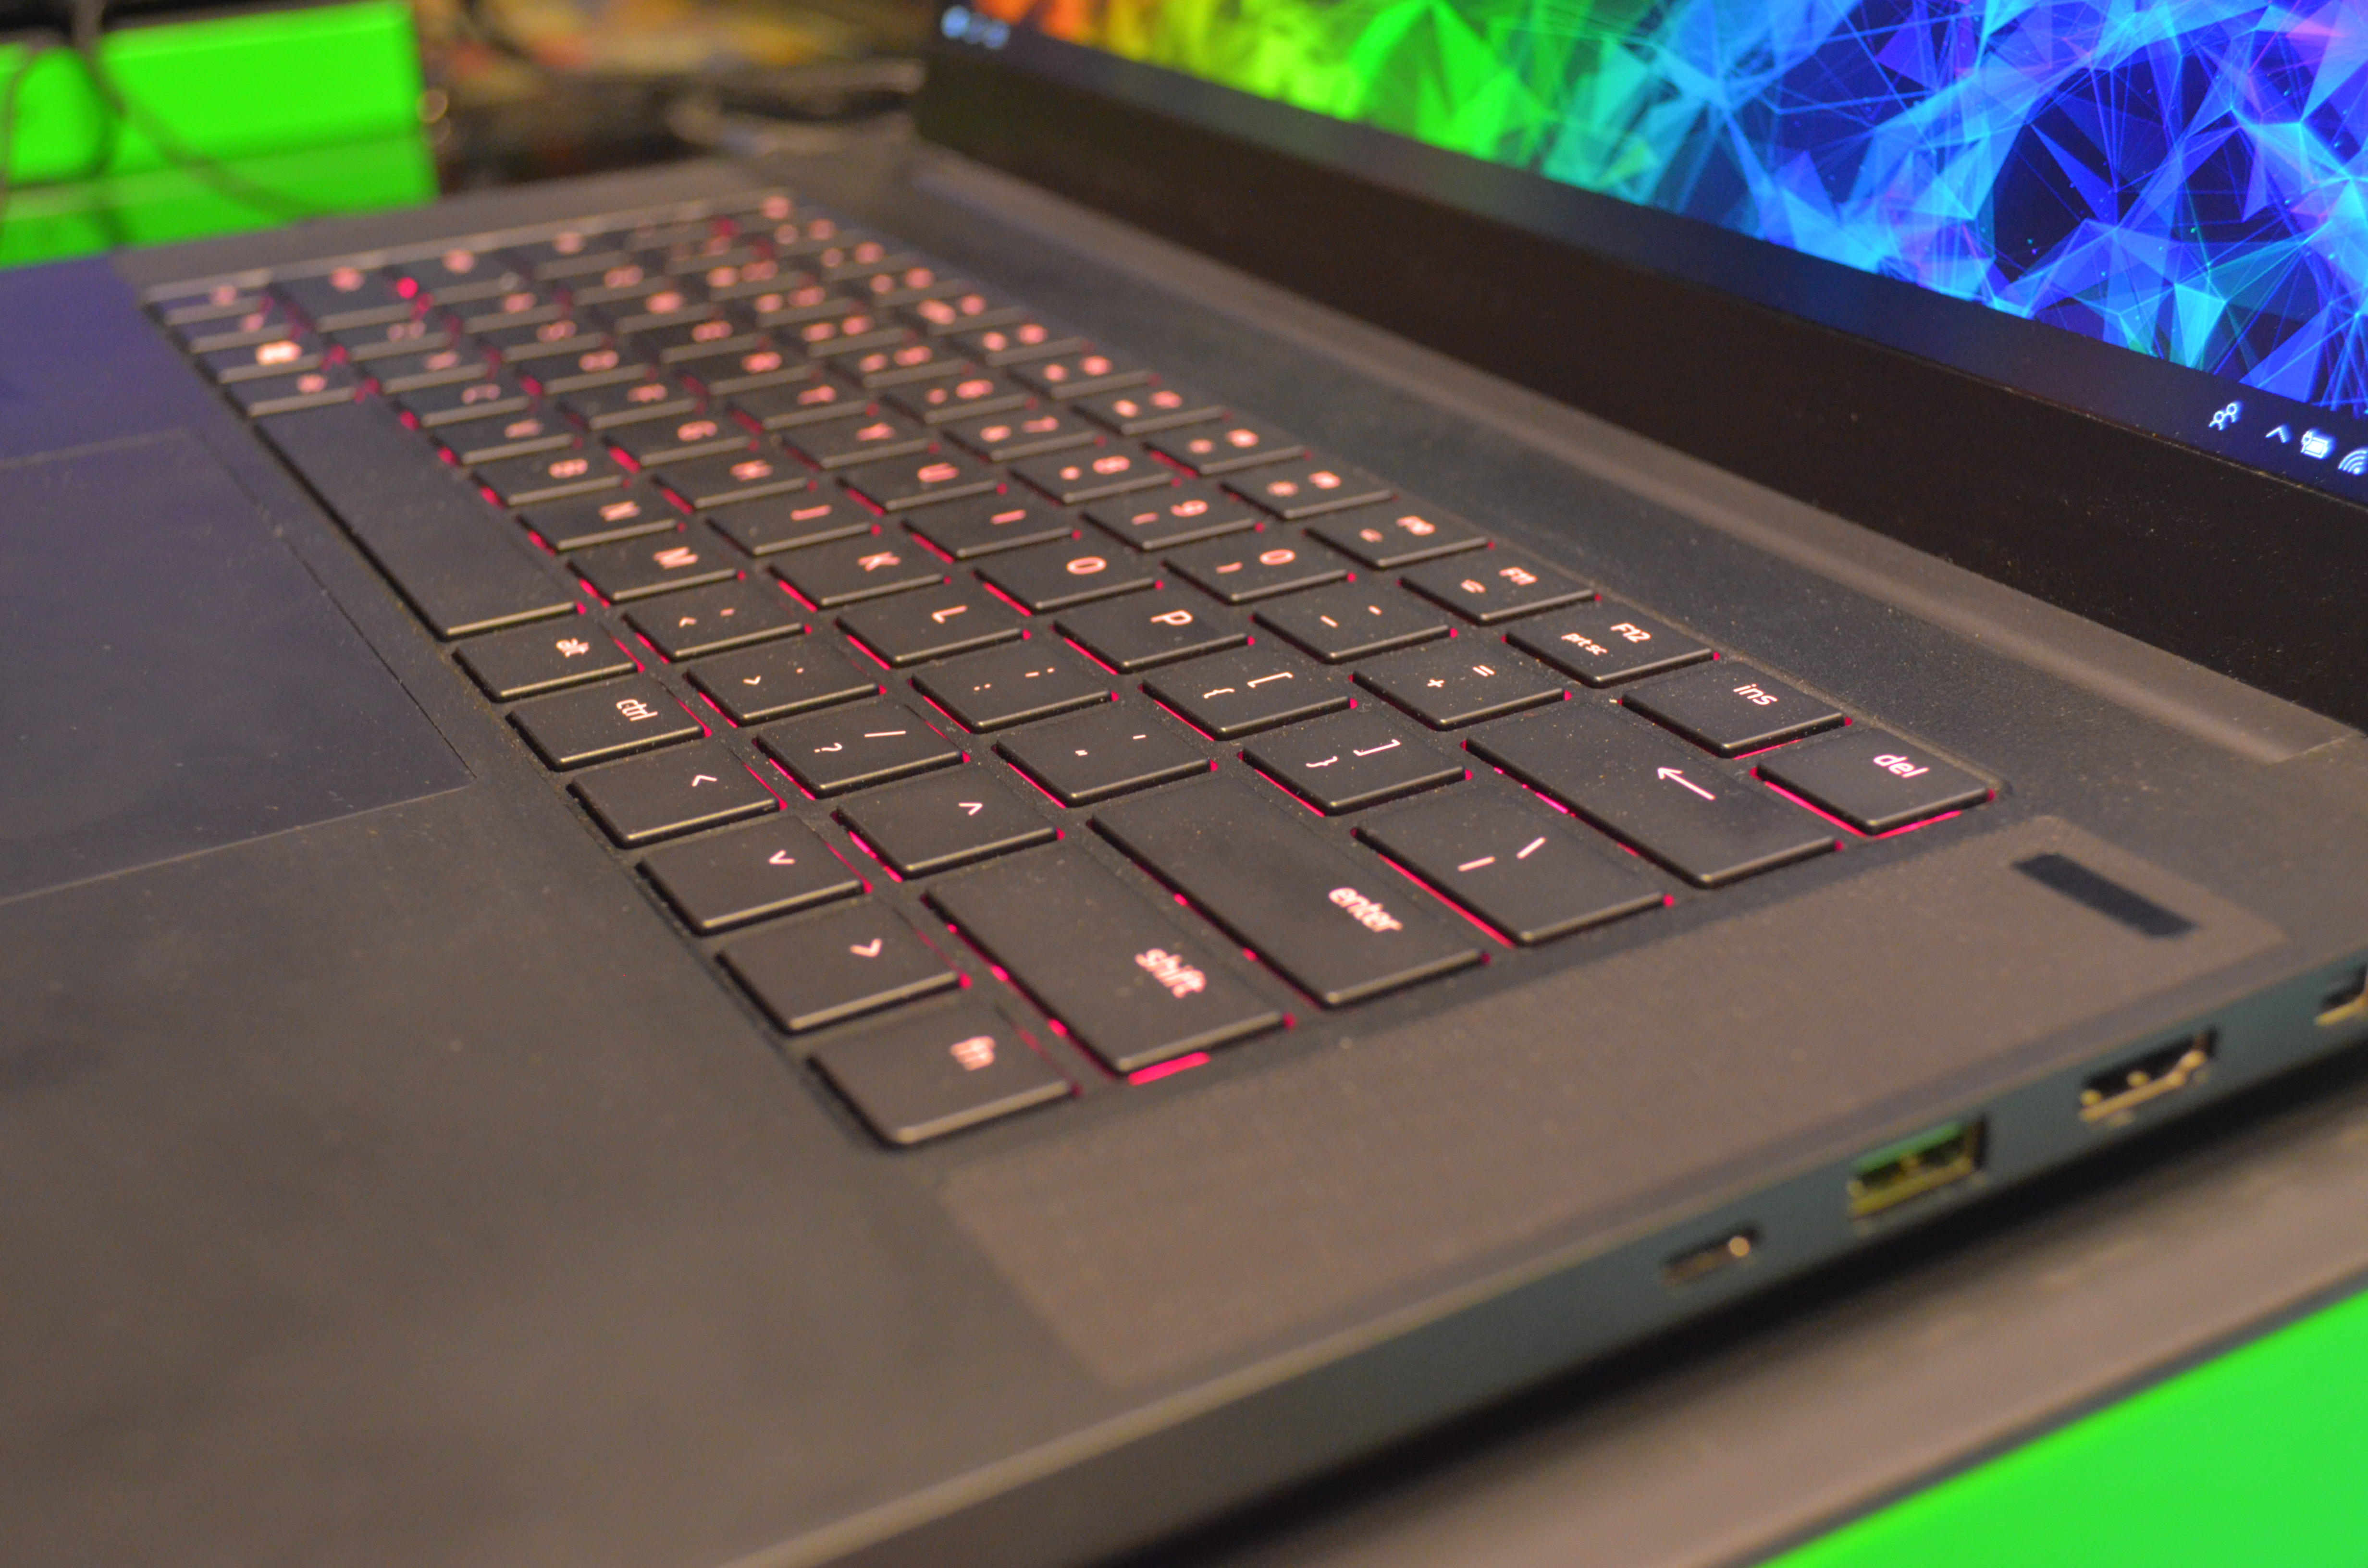 Hands-On: The all new Razer Blade RTX - Can Raytracing